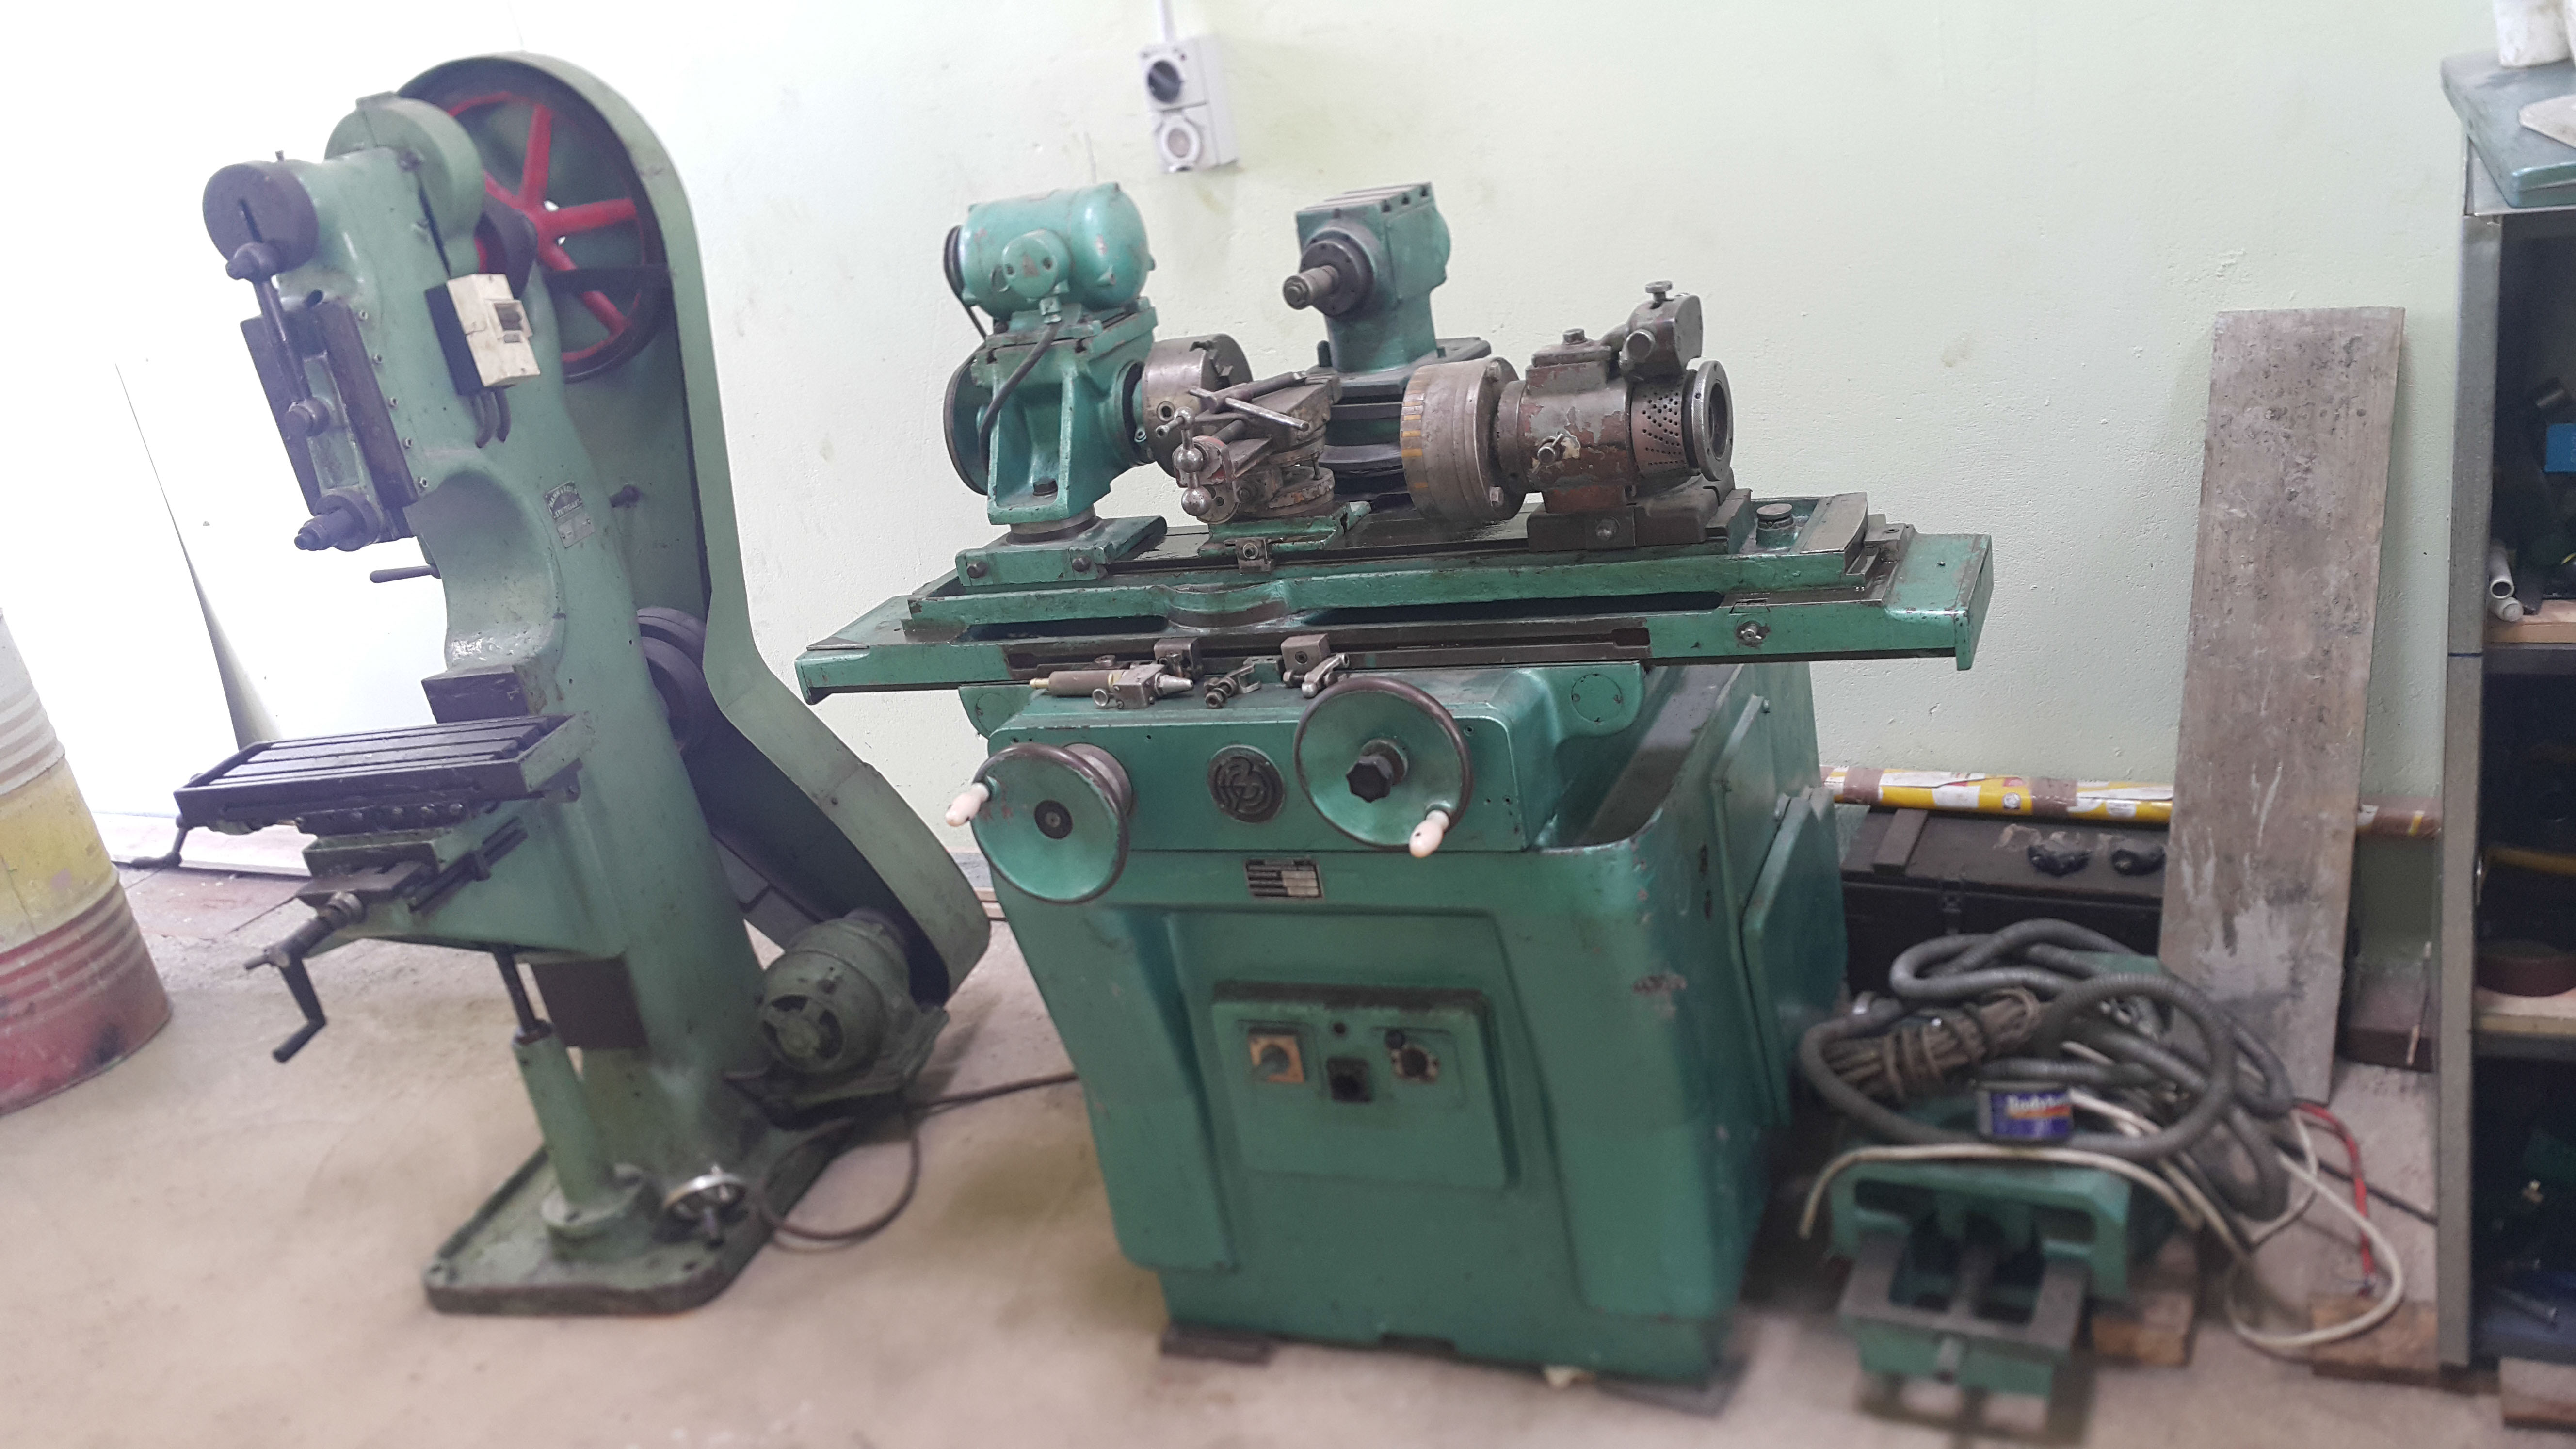 03 Tool and cutter grinder